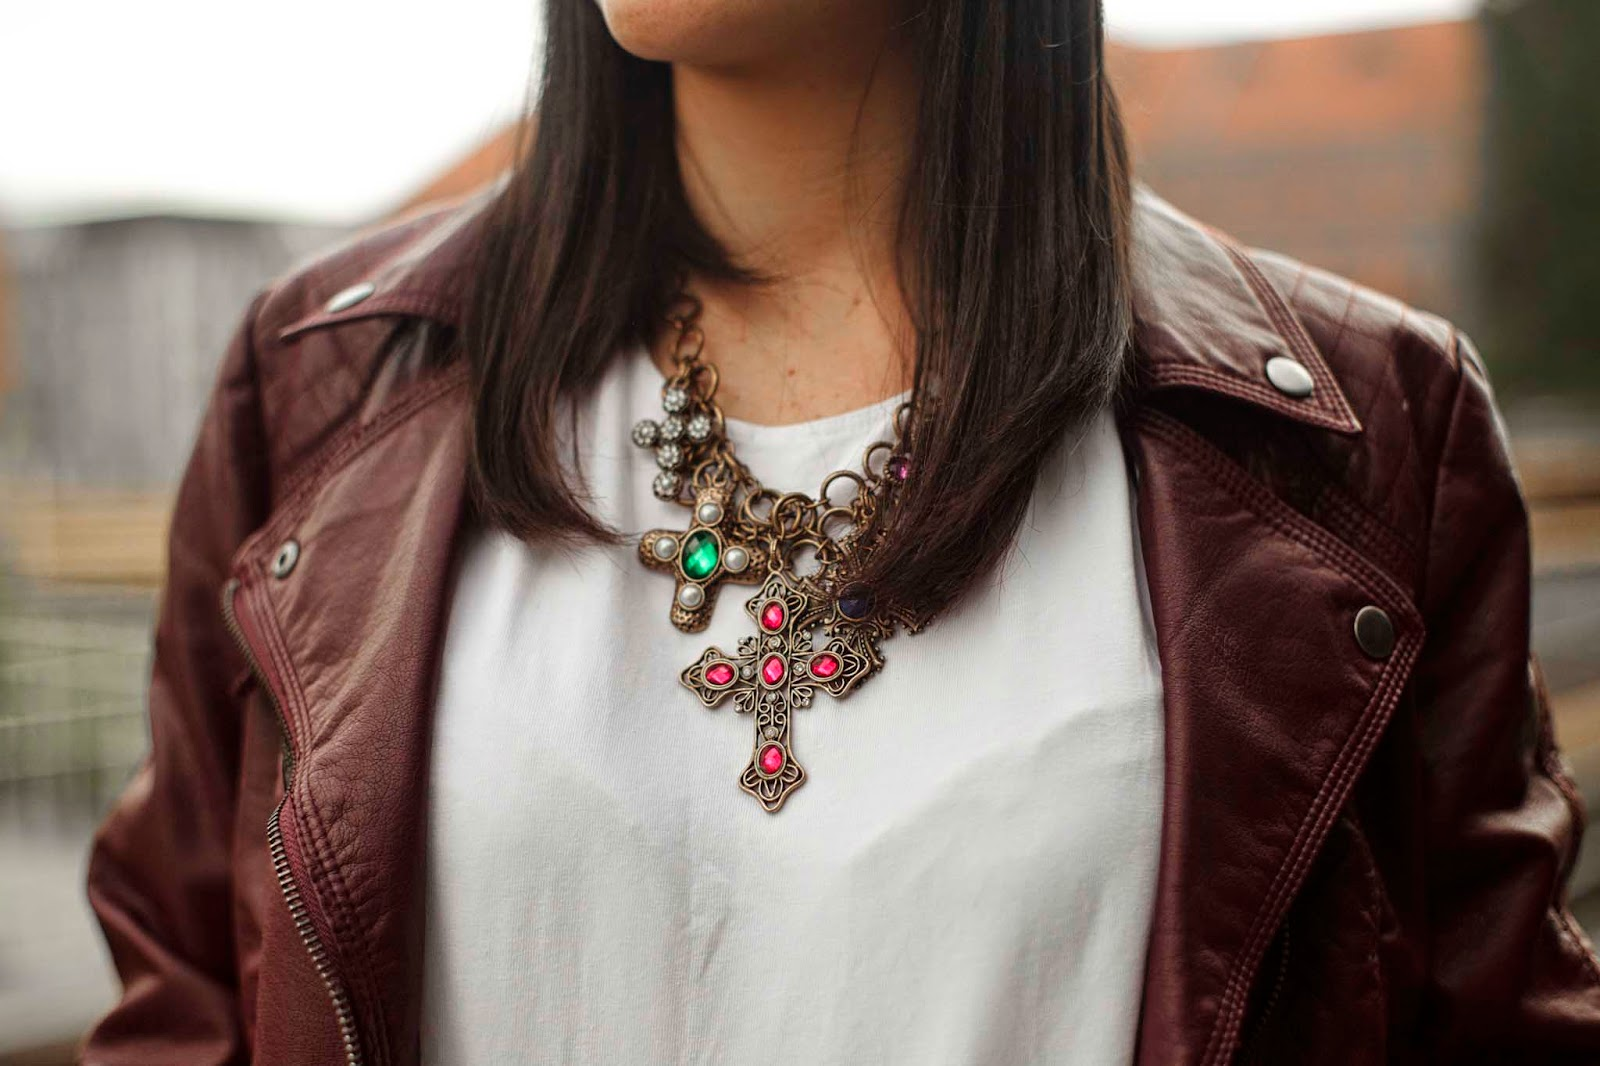 crosses_necklace_accessorize_jewelery_chicetoile_francescacastellano